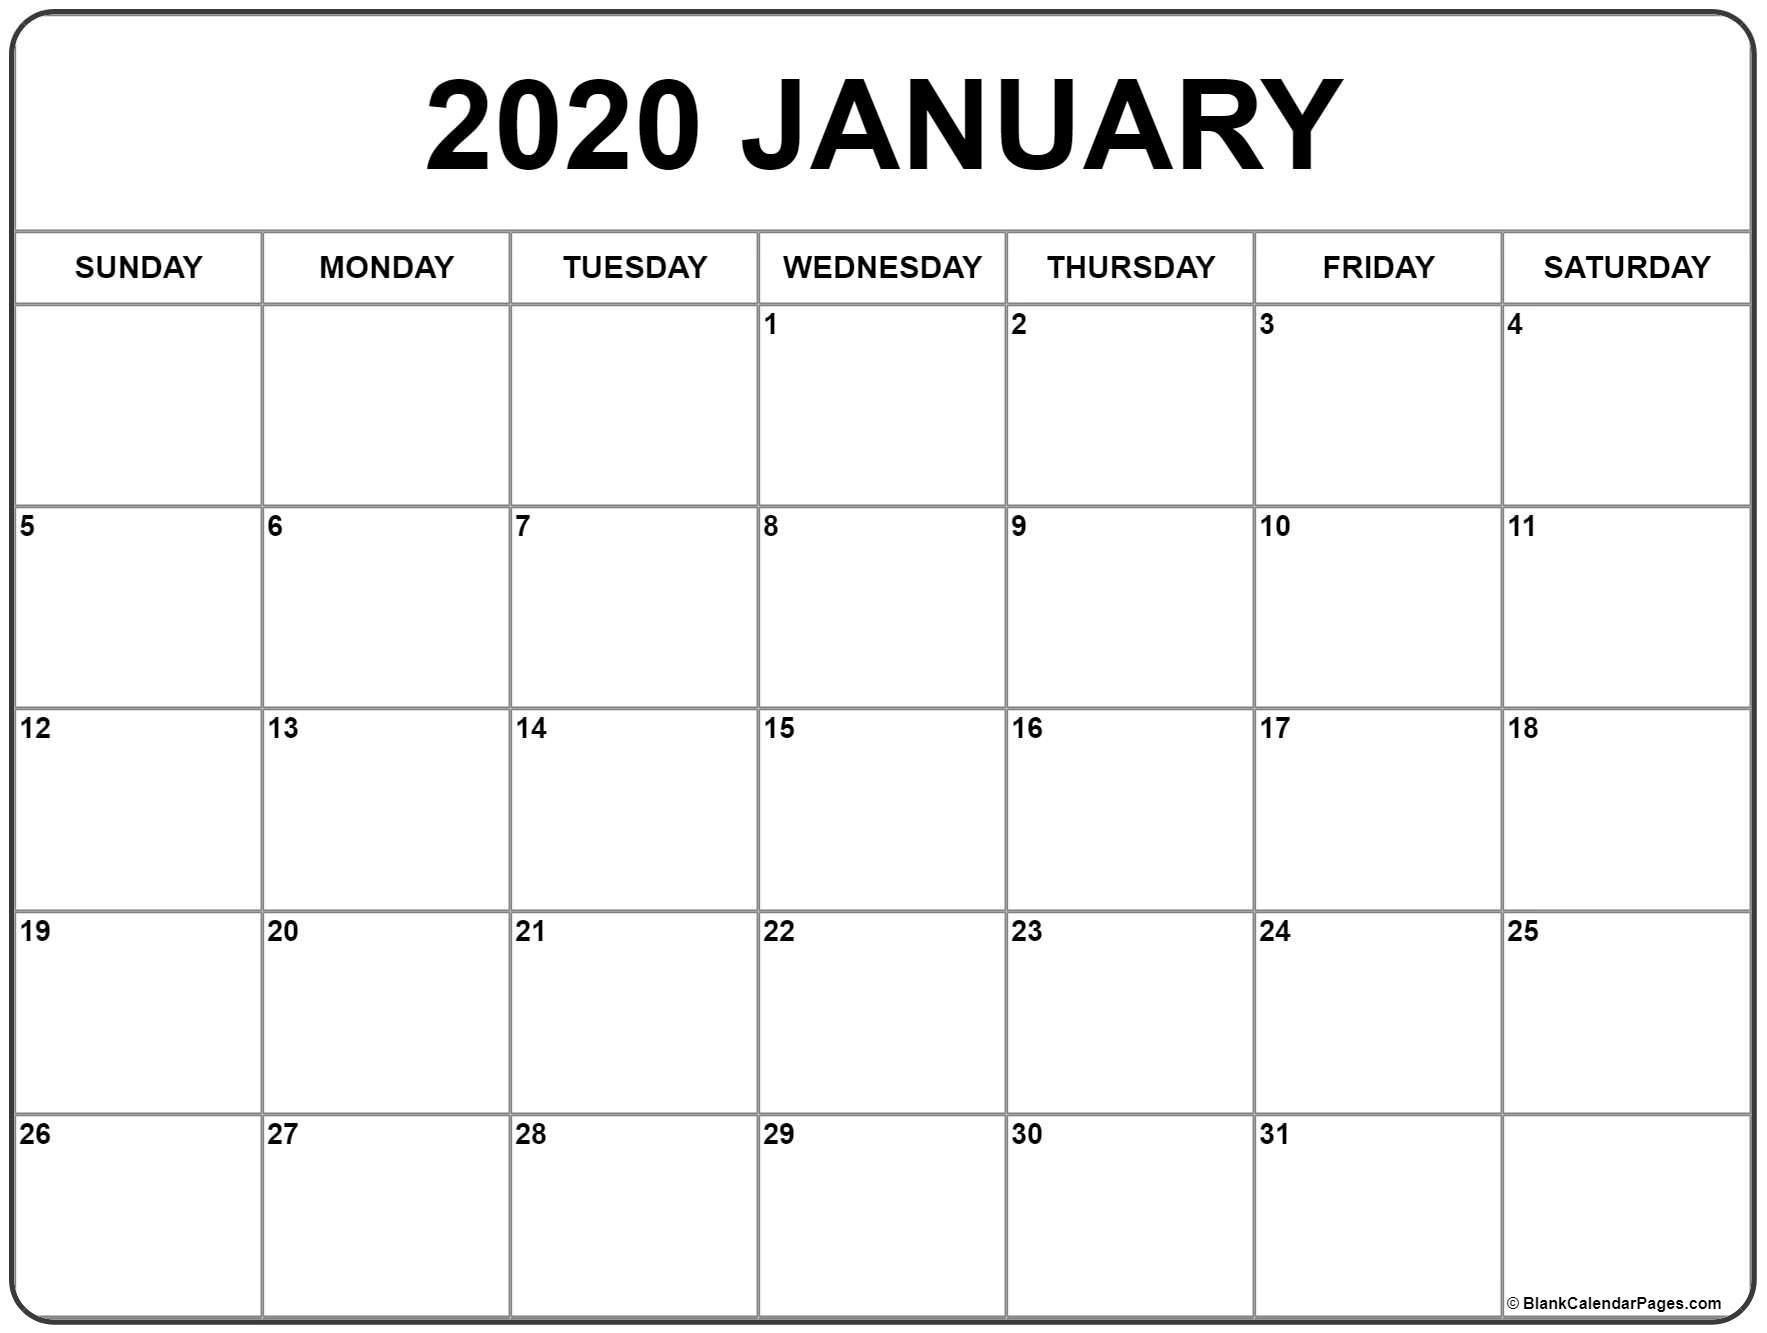 January 2020 Calendar | Free Printable Monthly Calendars pertaining to 2020 Printable Fill In Calendar